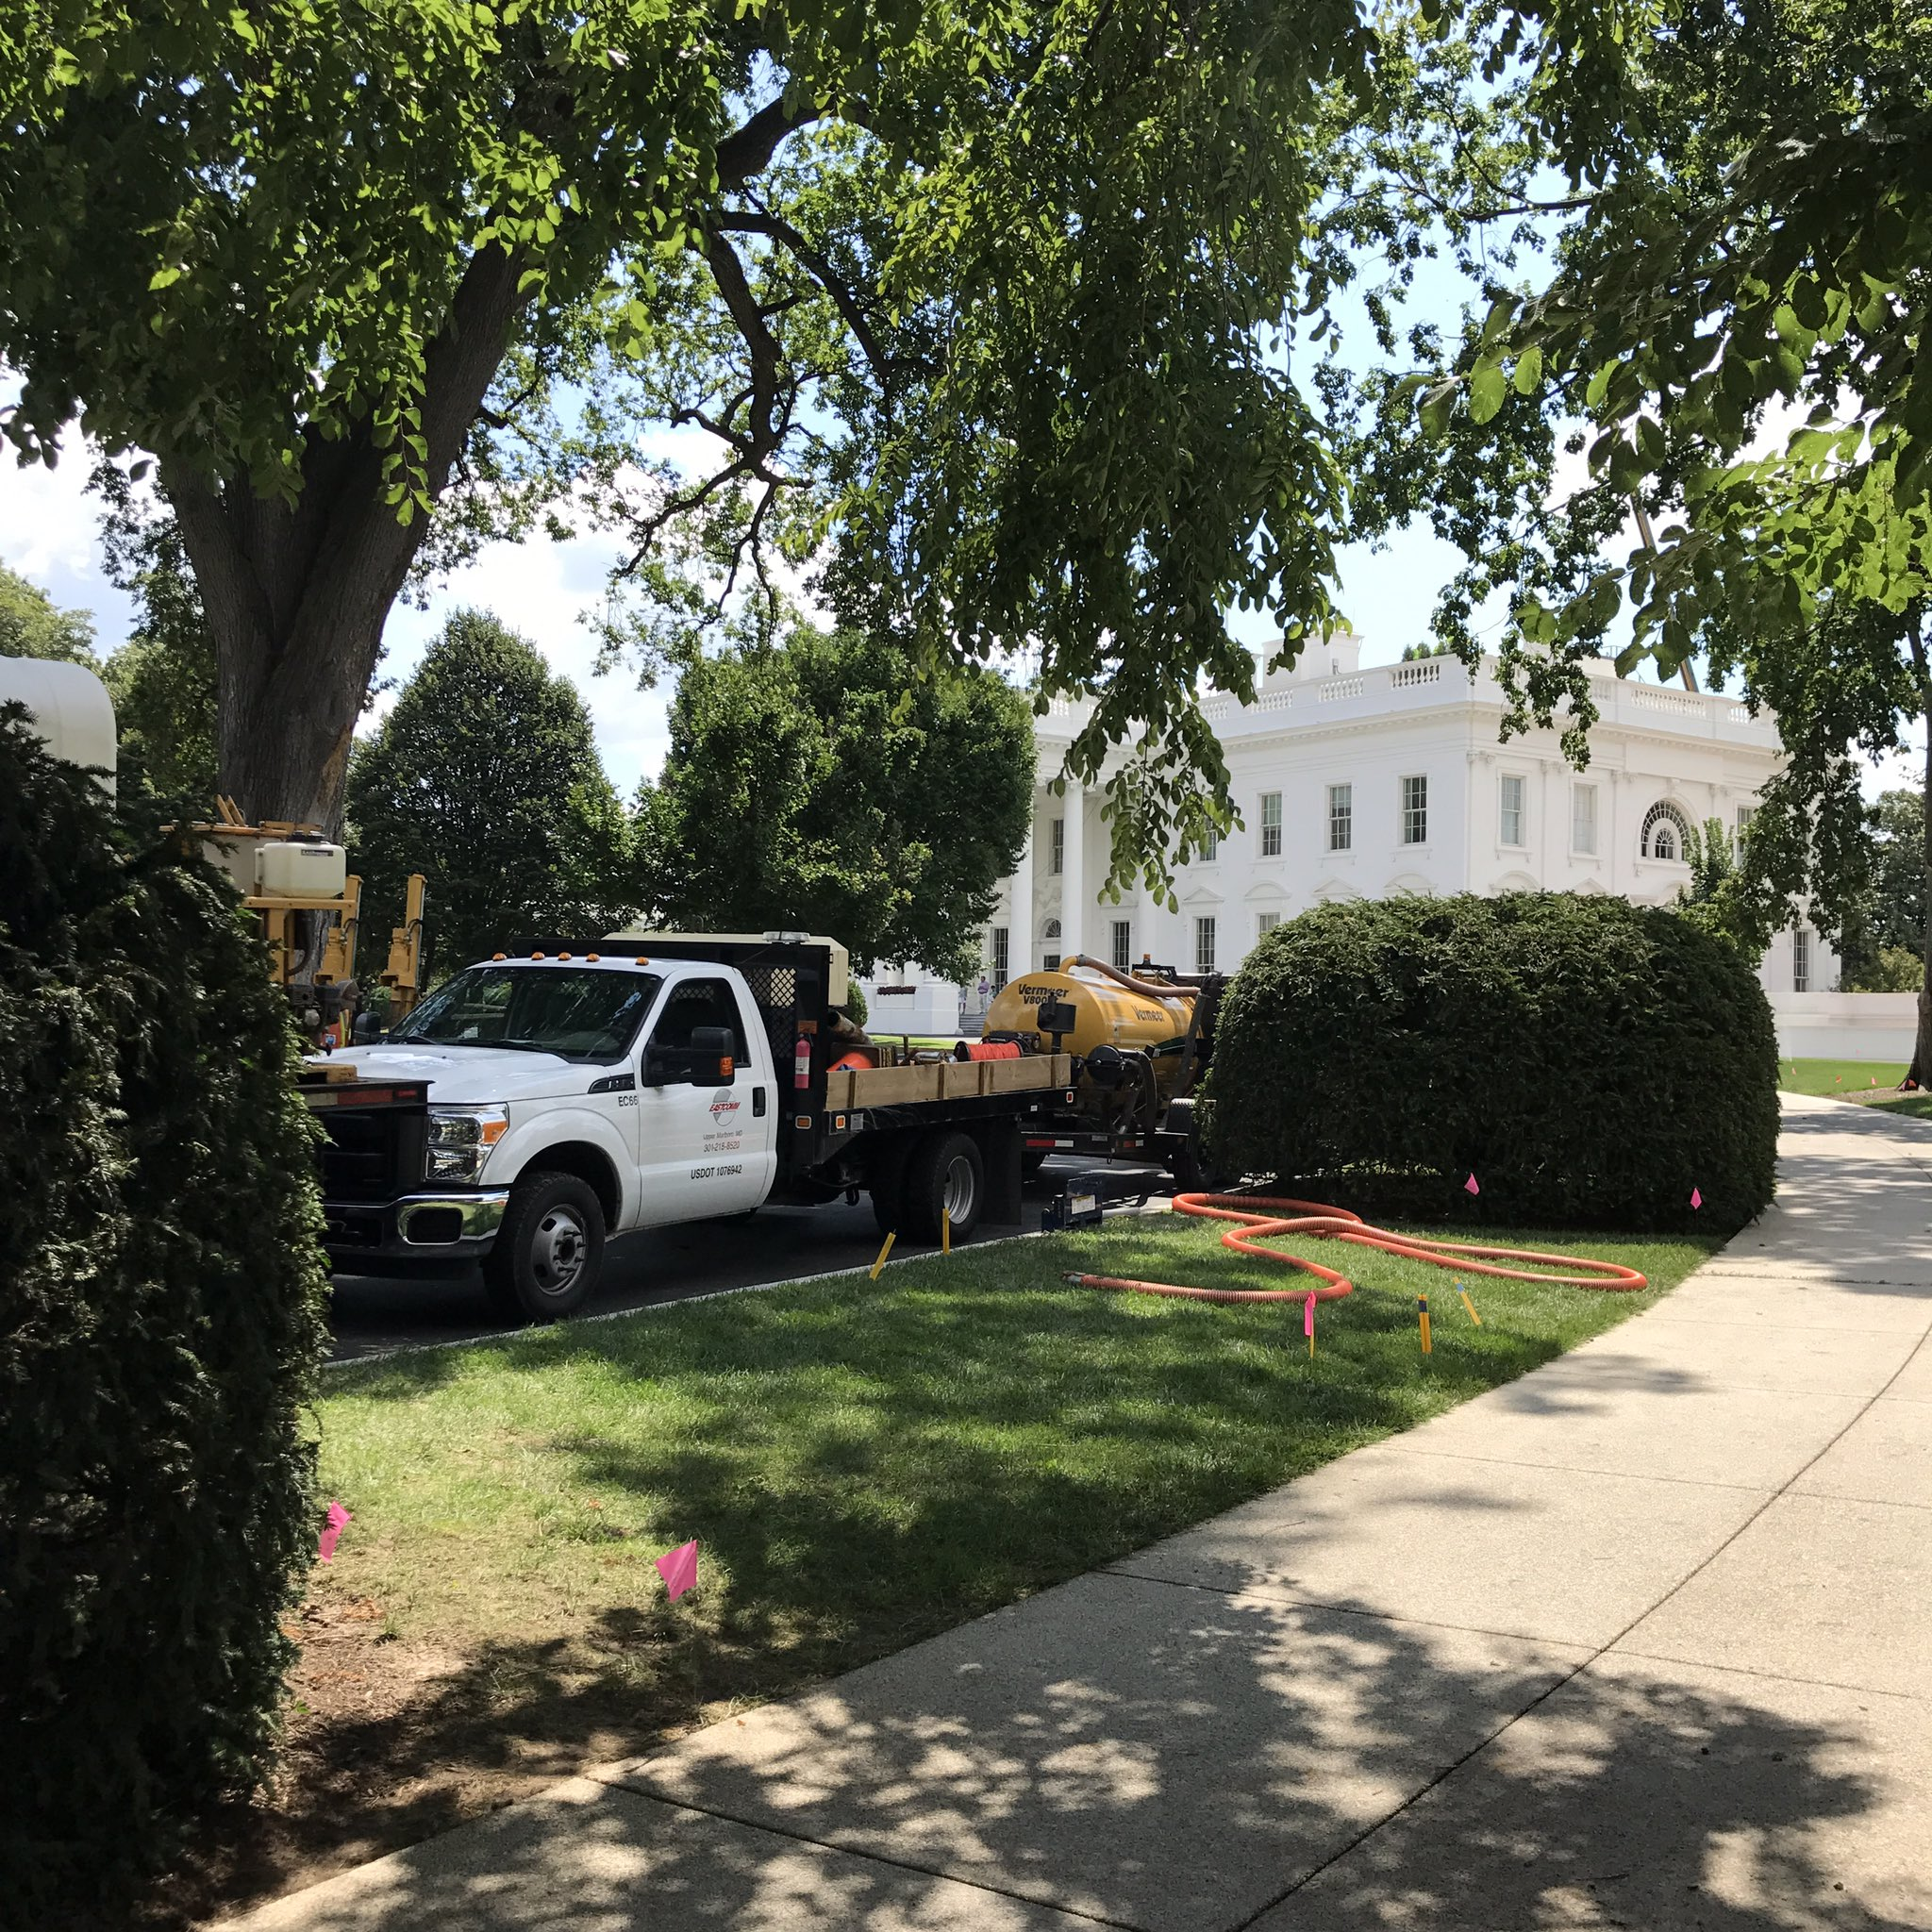 White House renovations underway while @realDonaldTrump works out of NJ/NY. https://t.co/nqxx9aJYVd